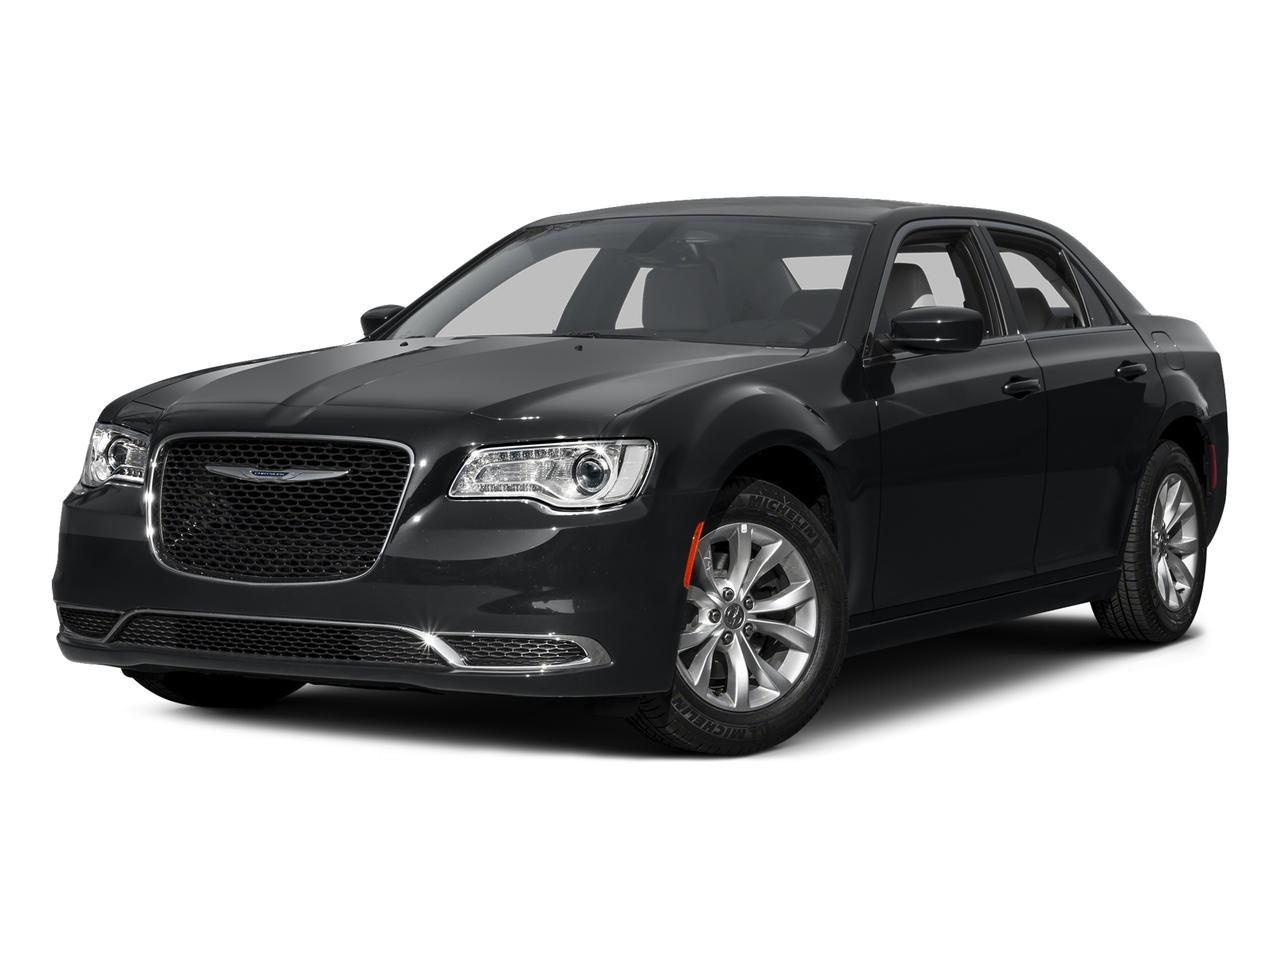 2015 Chrysler 300 Vehicle Photo in Medina, OH 44256